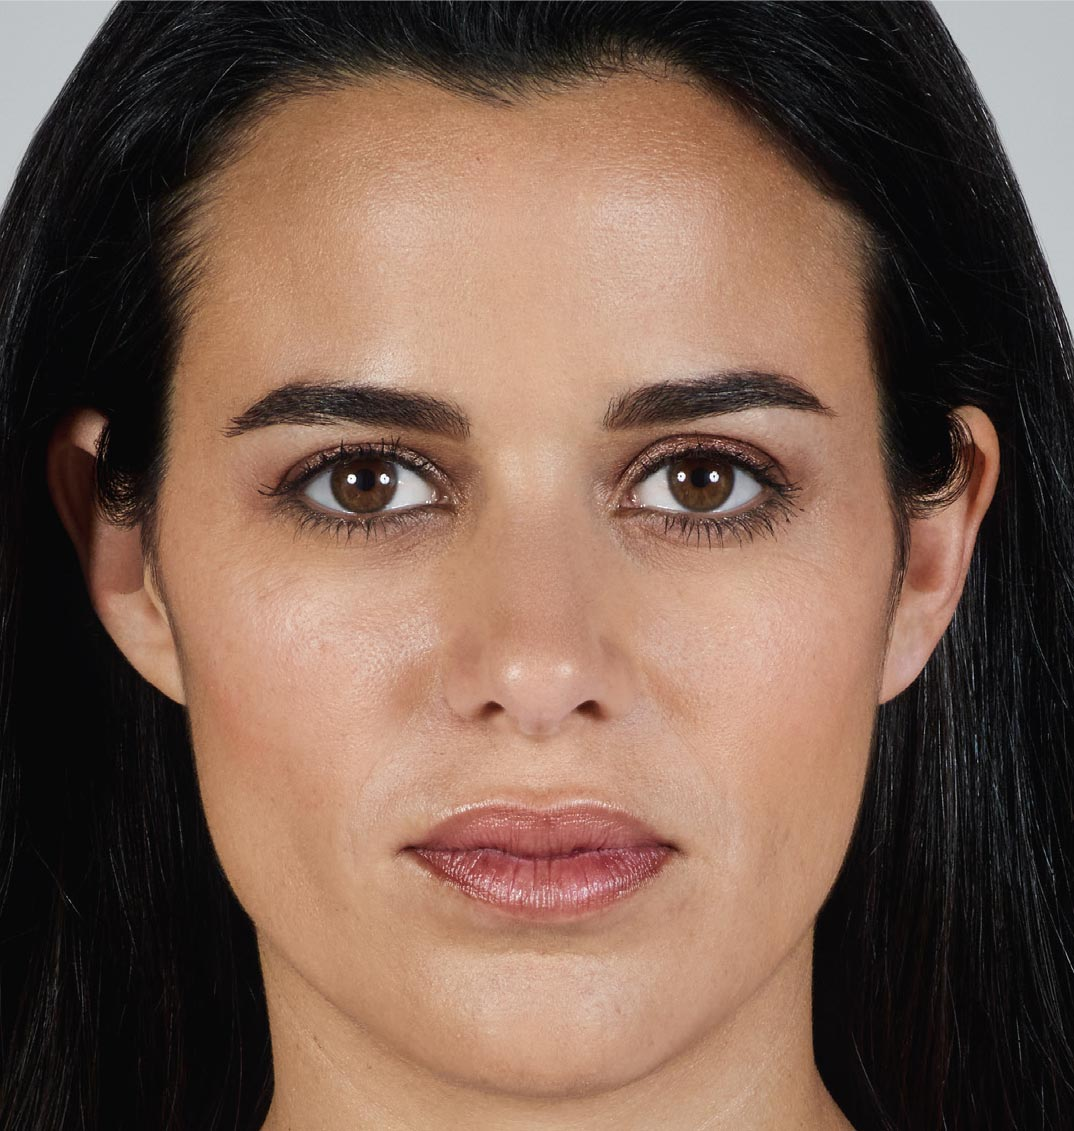 Juvederm Vollure XC 2 After